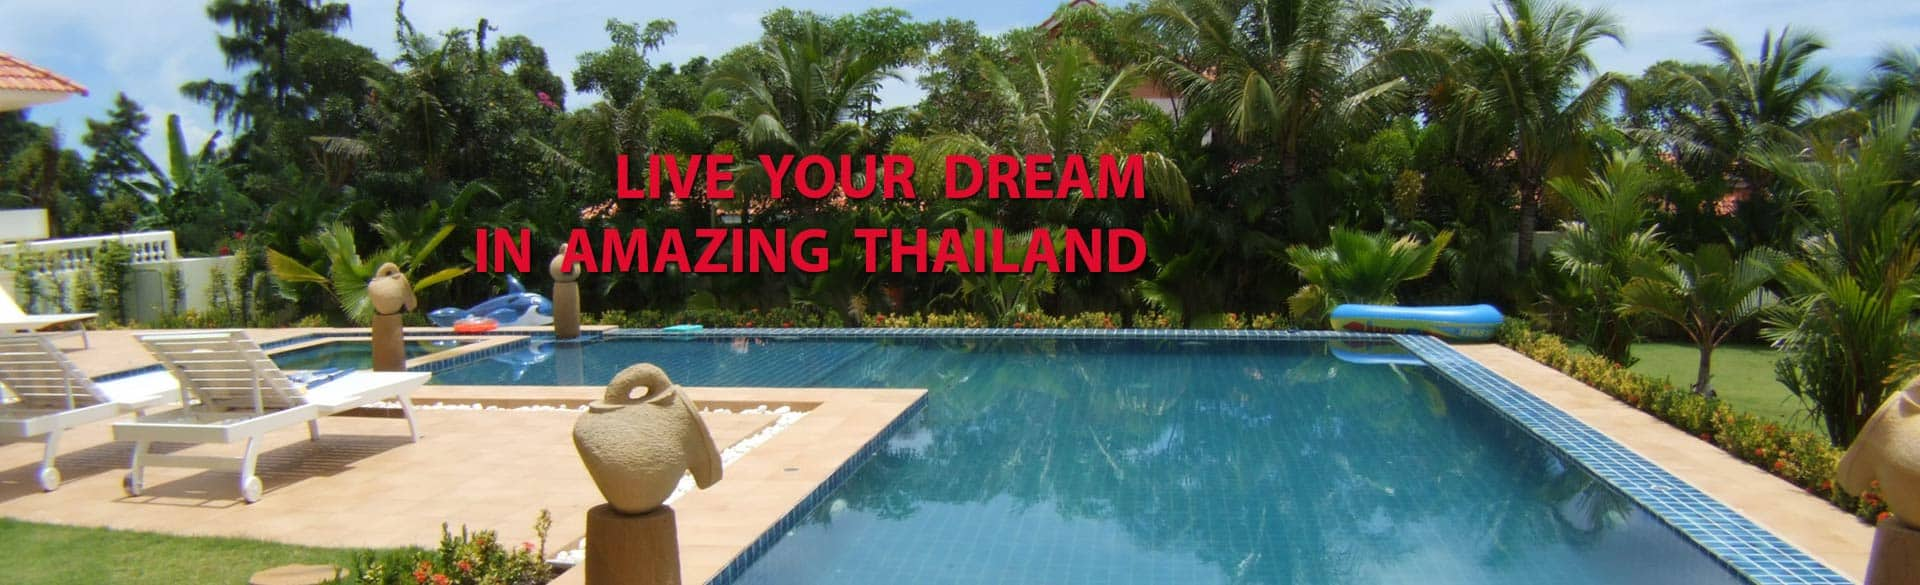 Property Realestate Hua Hin Live your dream in amazing Thailand